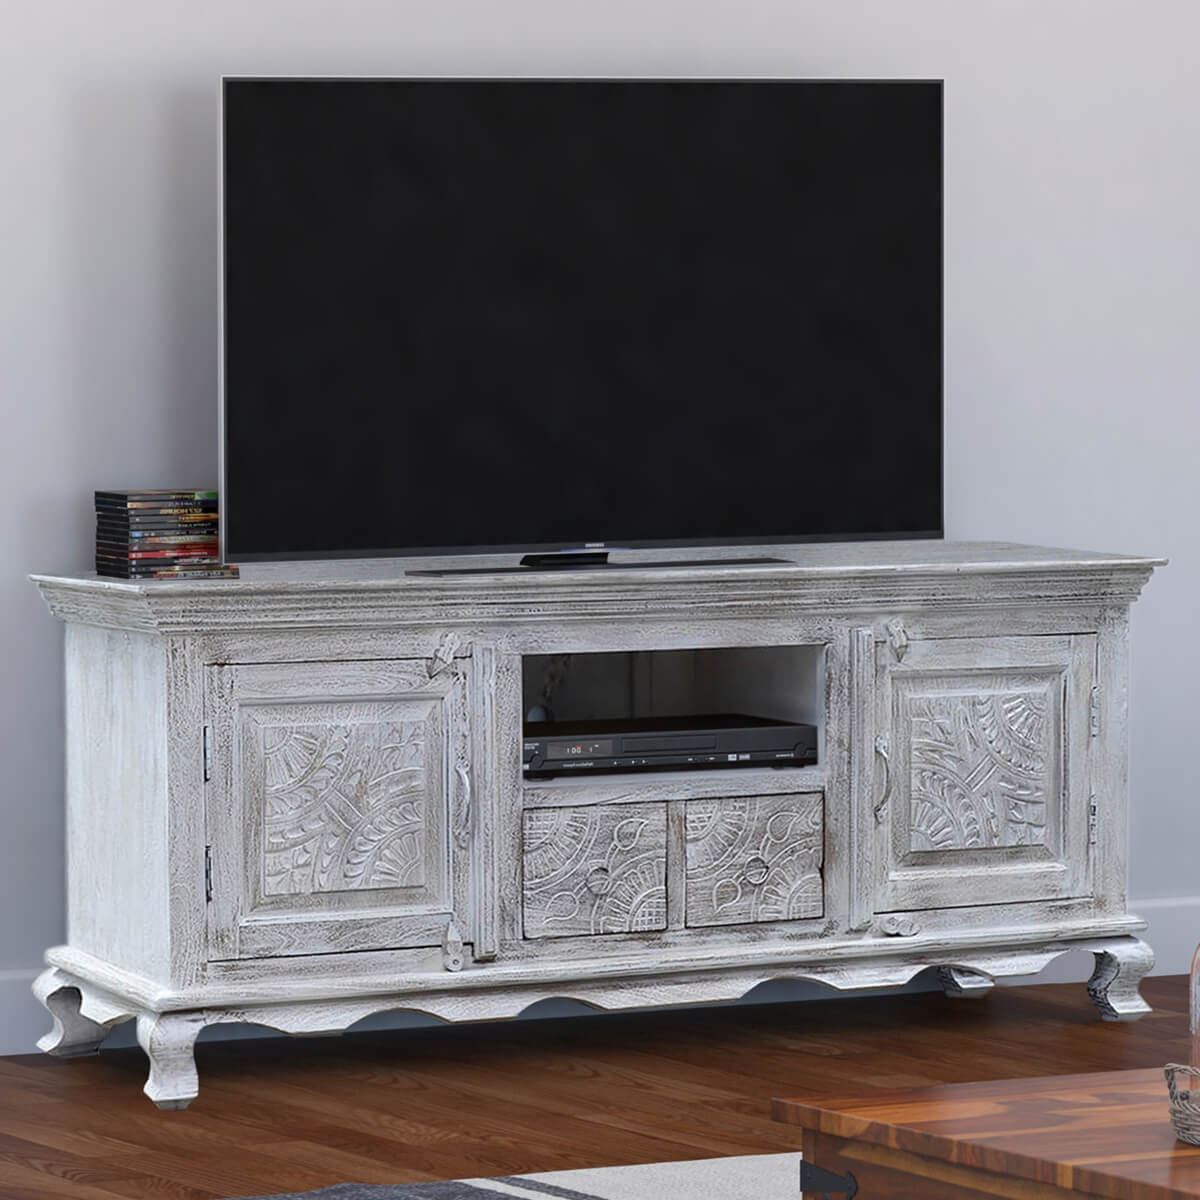 Caledon Hand Carved Rustic Reclaimed Wood TV Stand Media Console